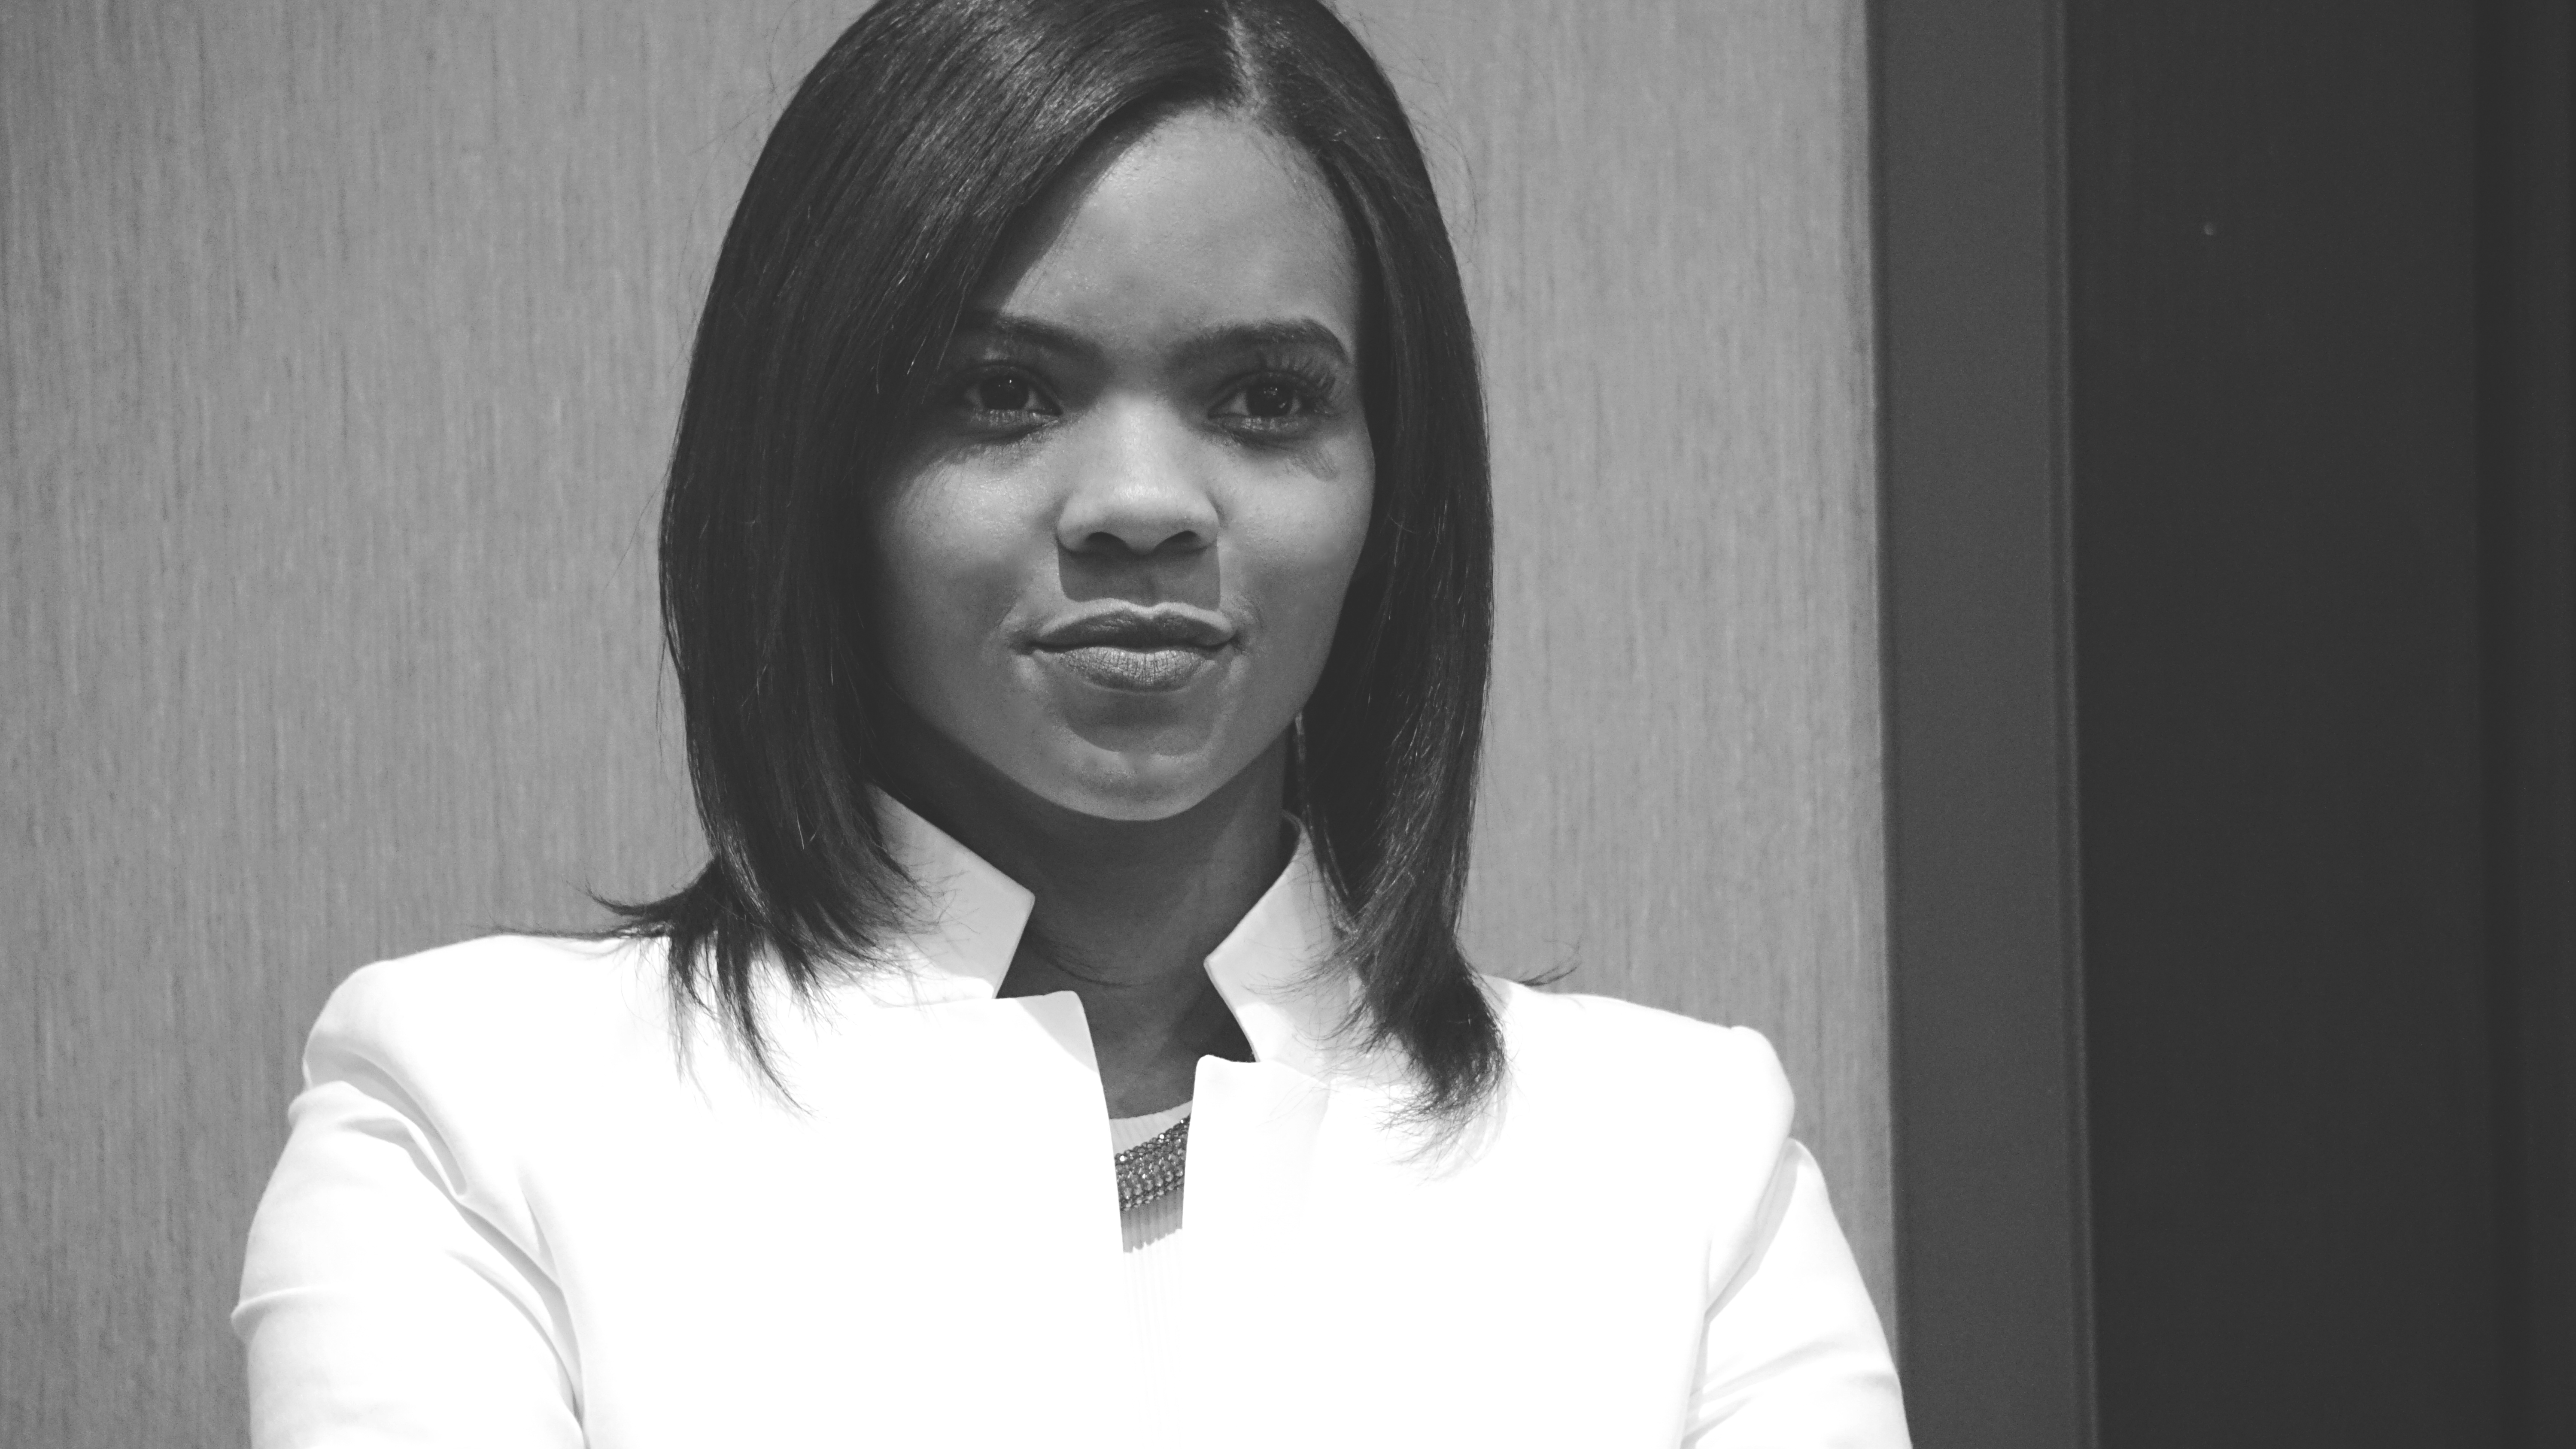 Candace Owens Image: Candace Owens' Journey To Conservatism